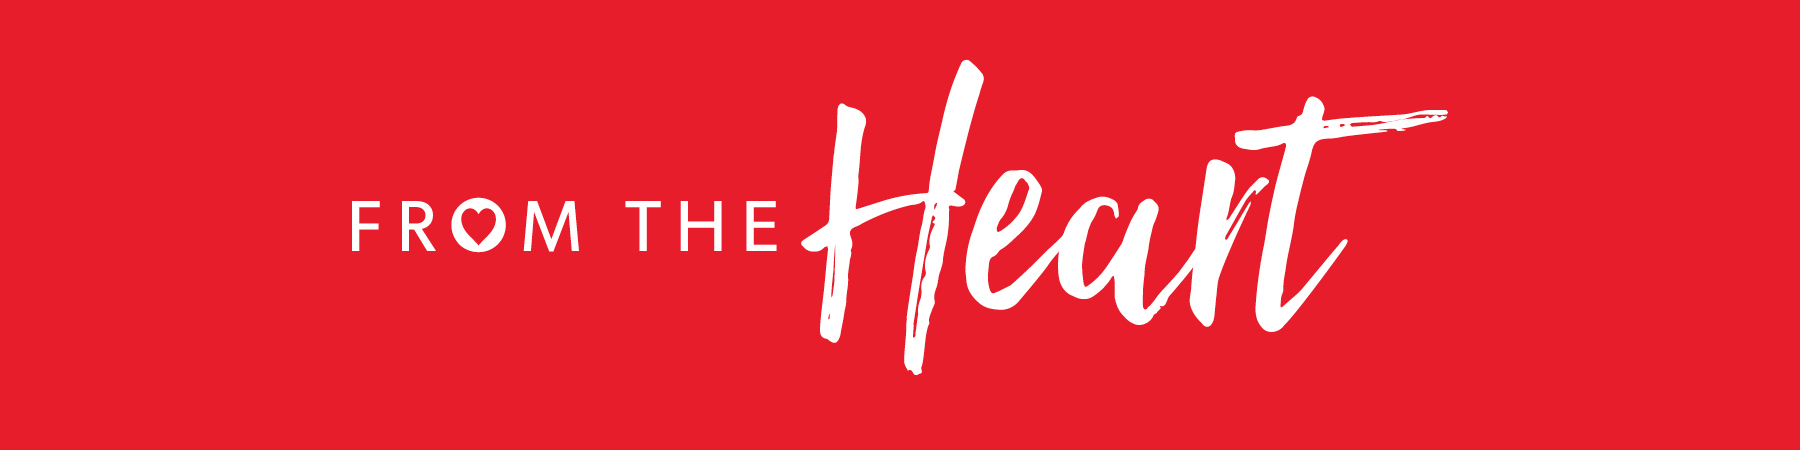 how to keep your heart healthy | Arkansas Heart Hospital | From the Heart Blog